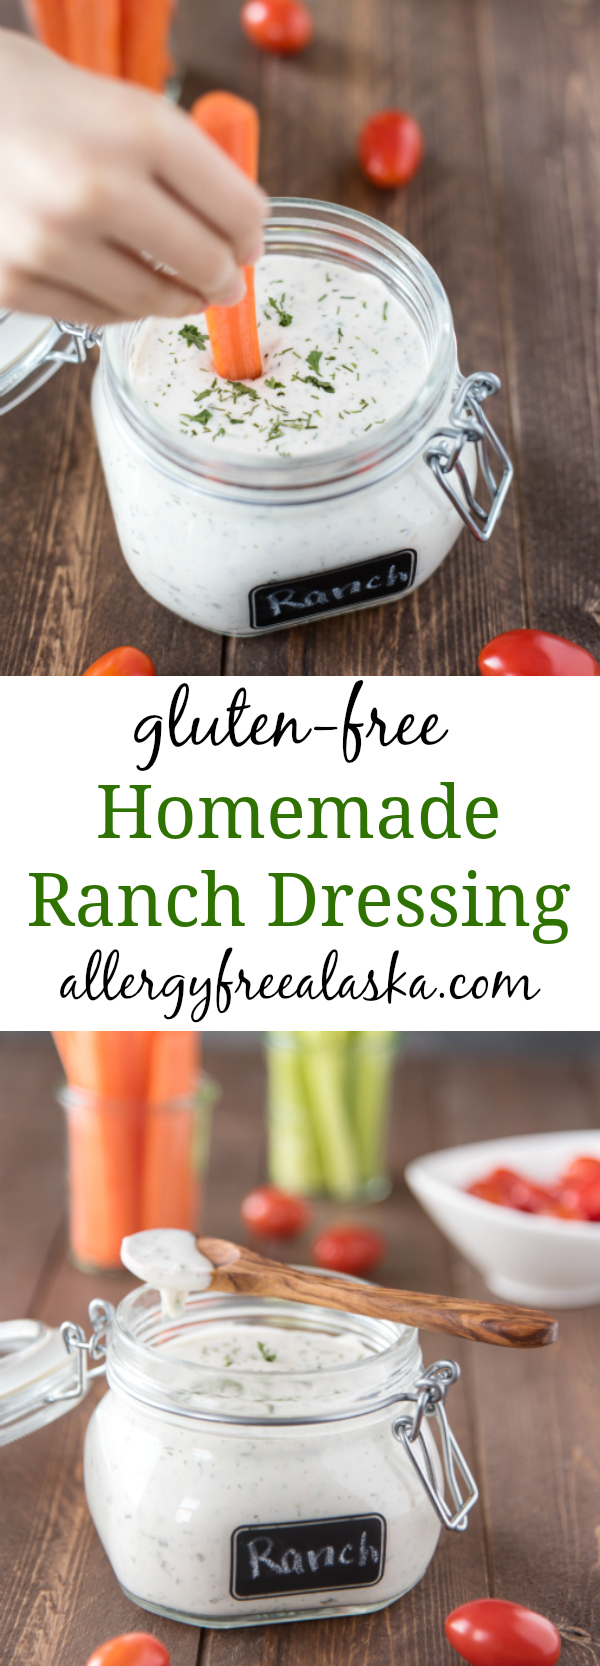 homemade ranch dressing pinterest collage